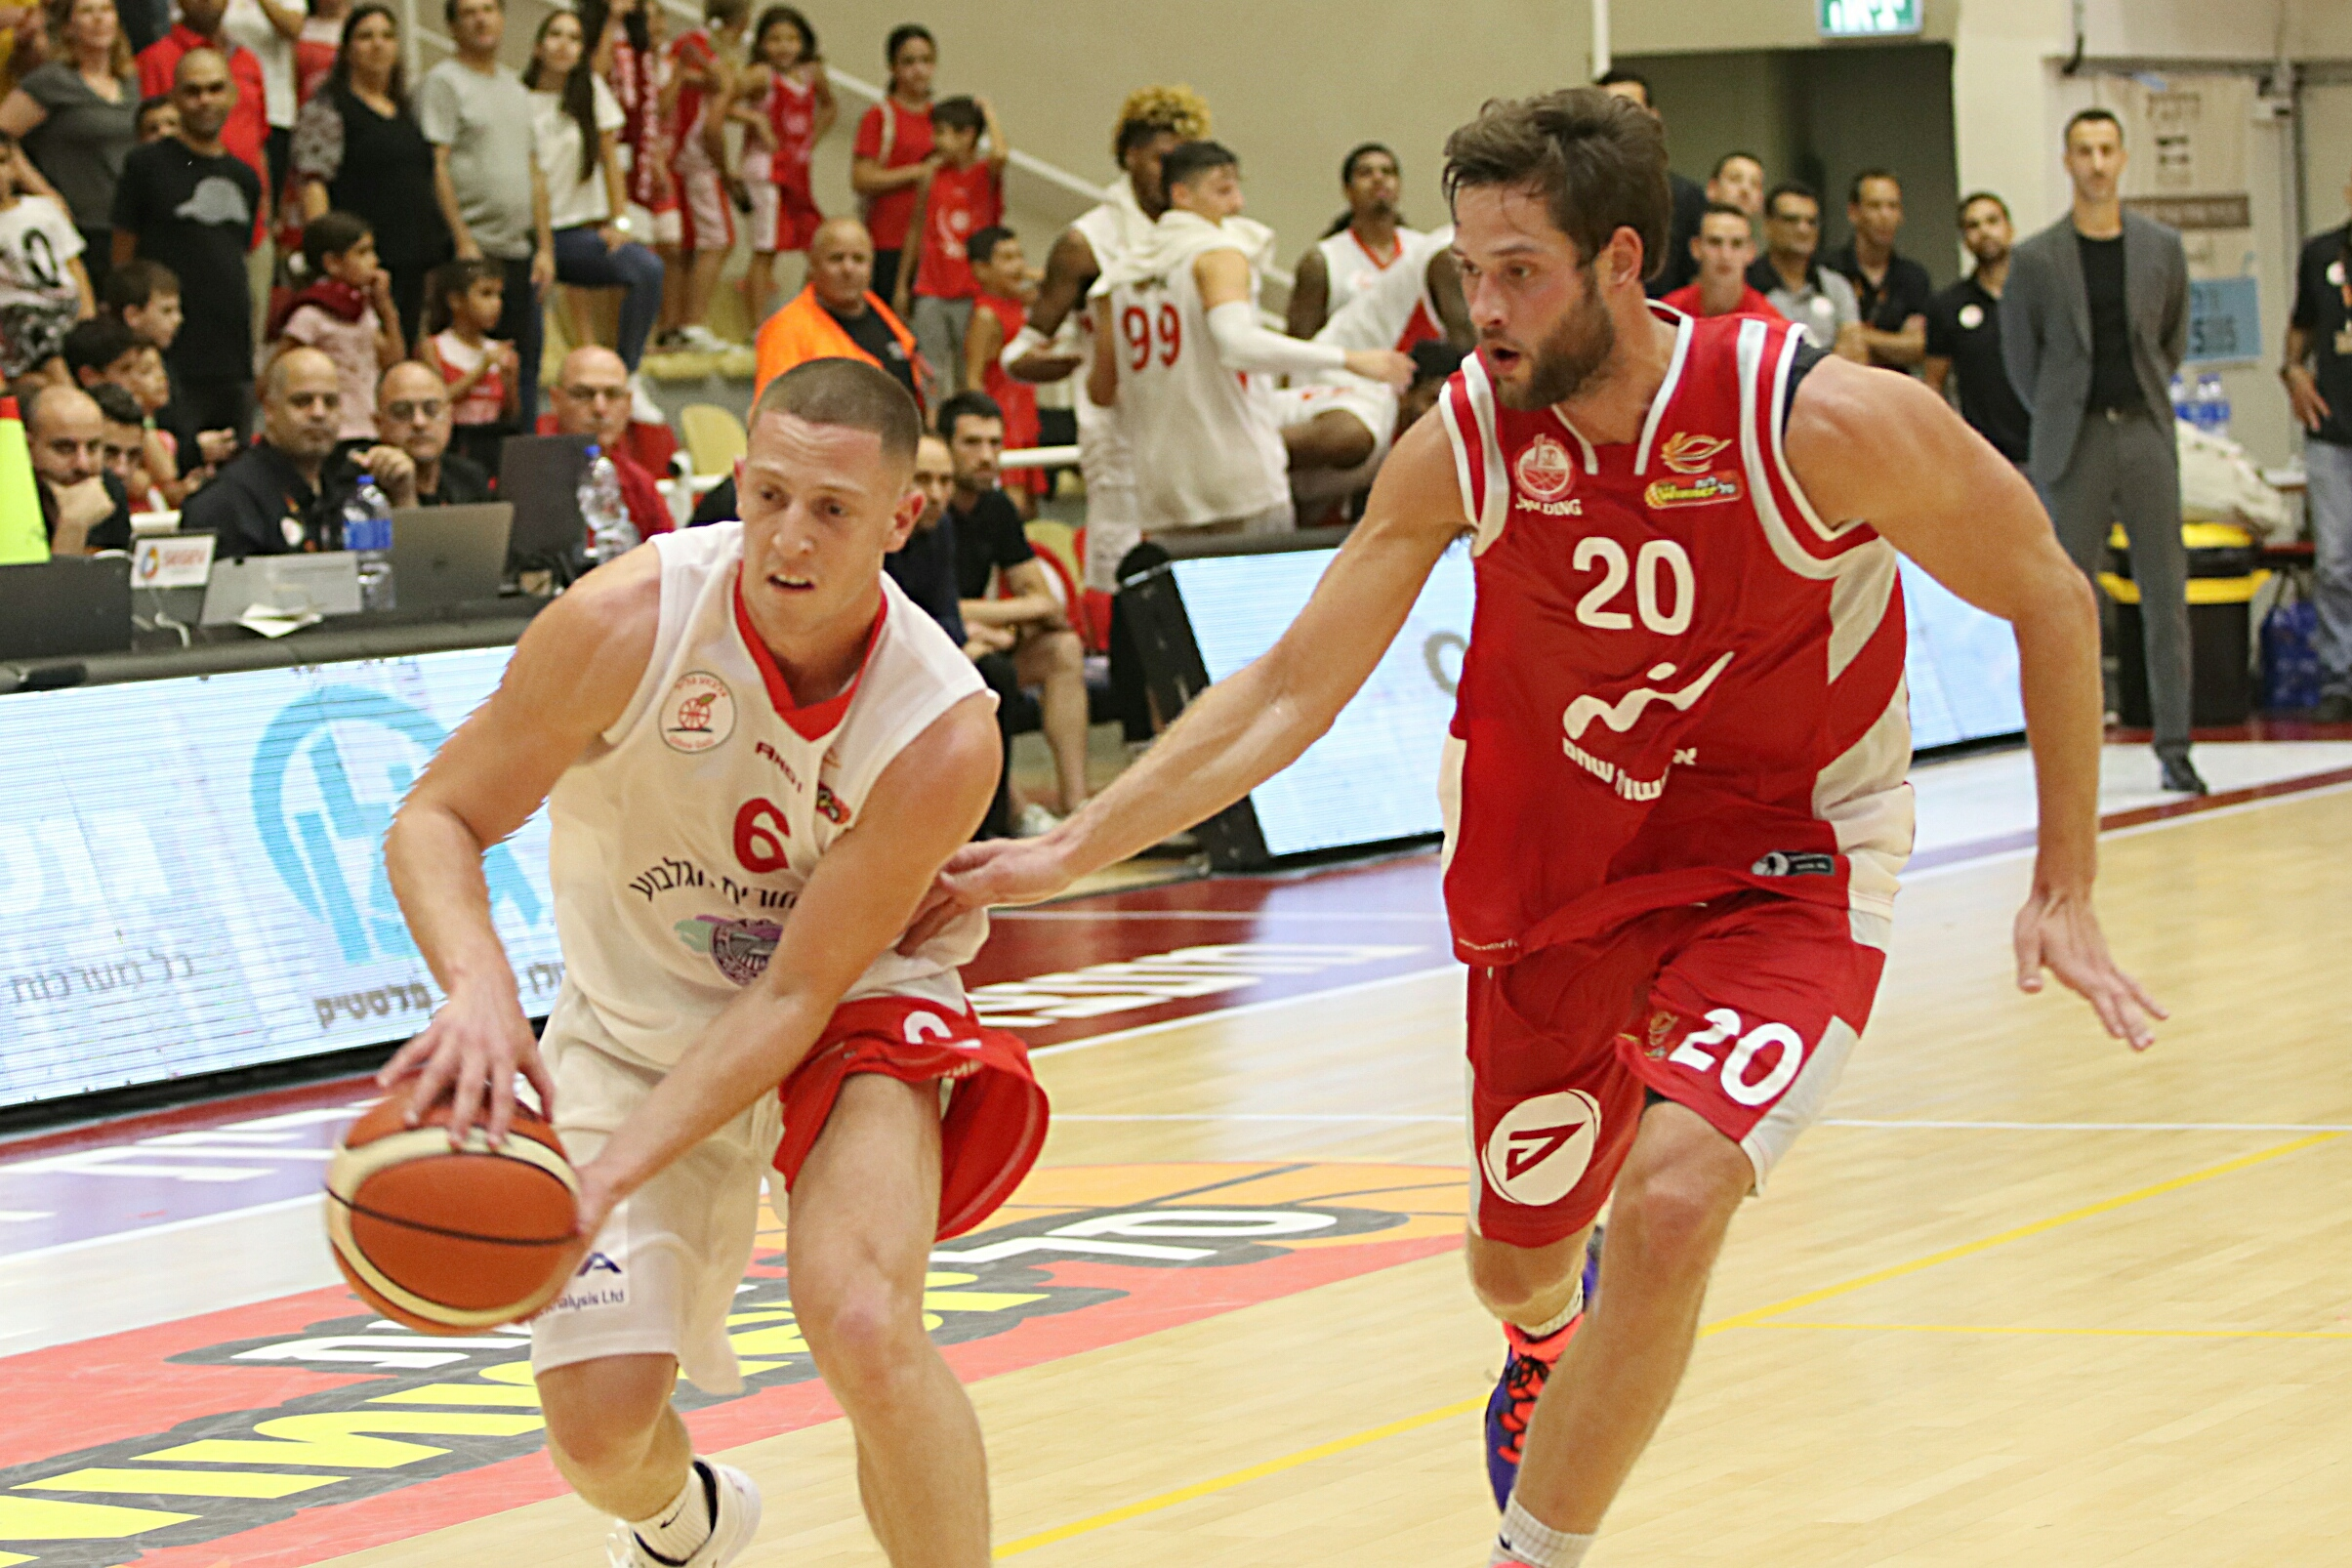 Day 1: Gilboa/Galil - Be'er Sheva 100:73